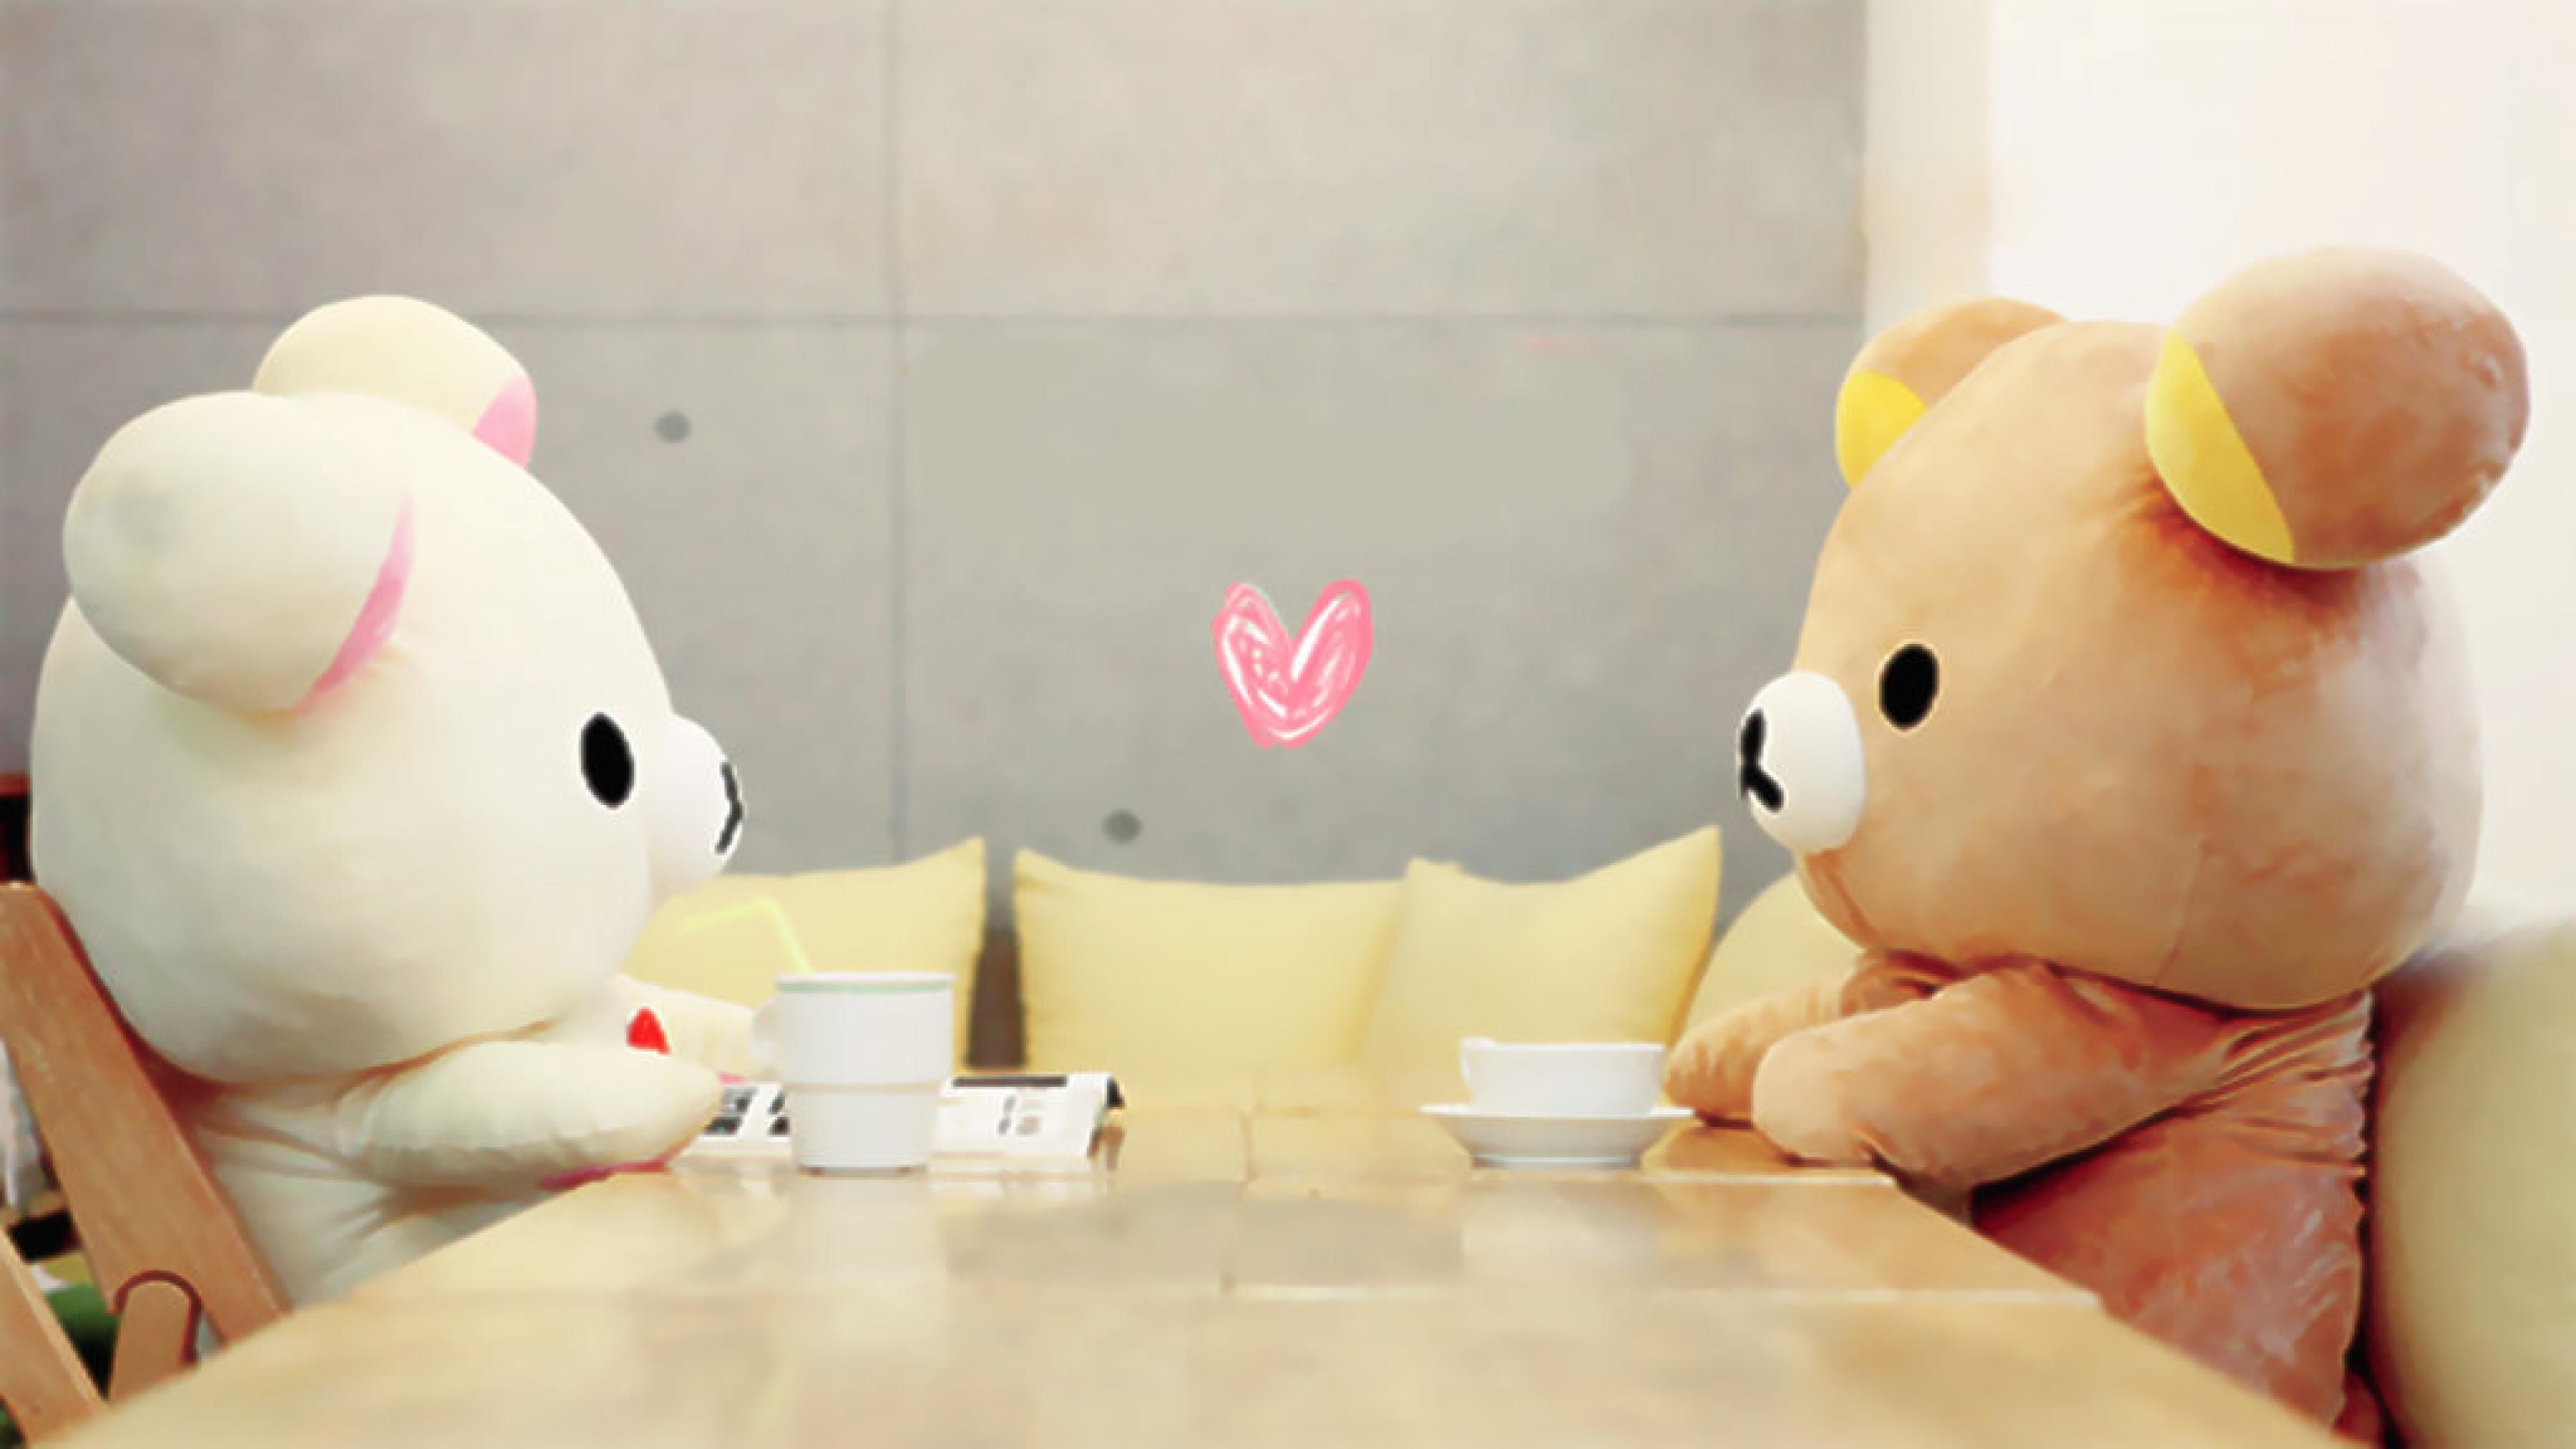 Cute Wallpaper Images 63 Images